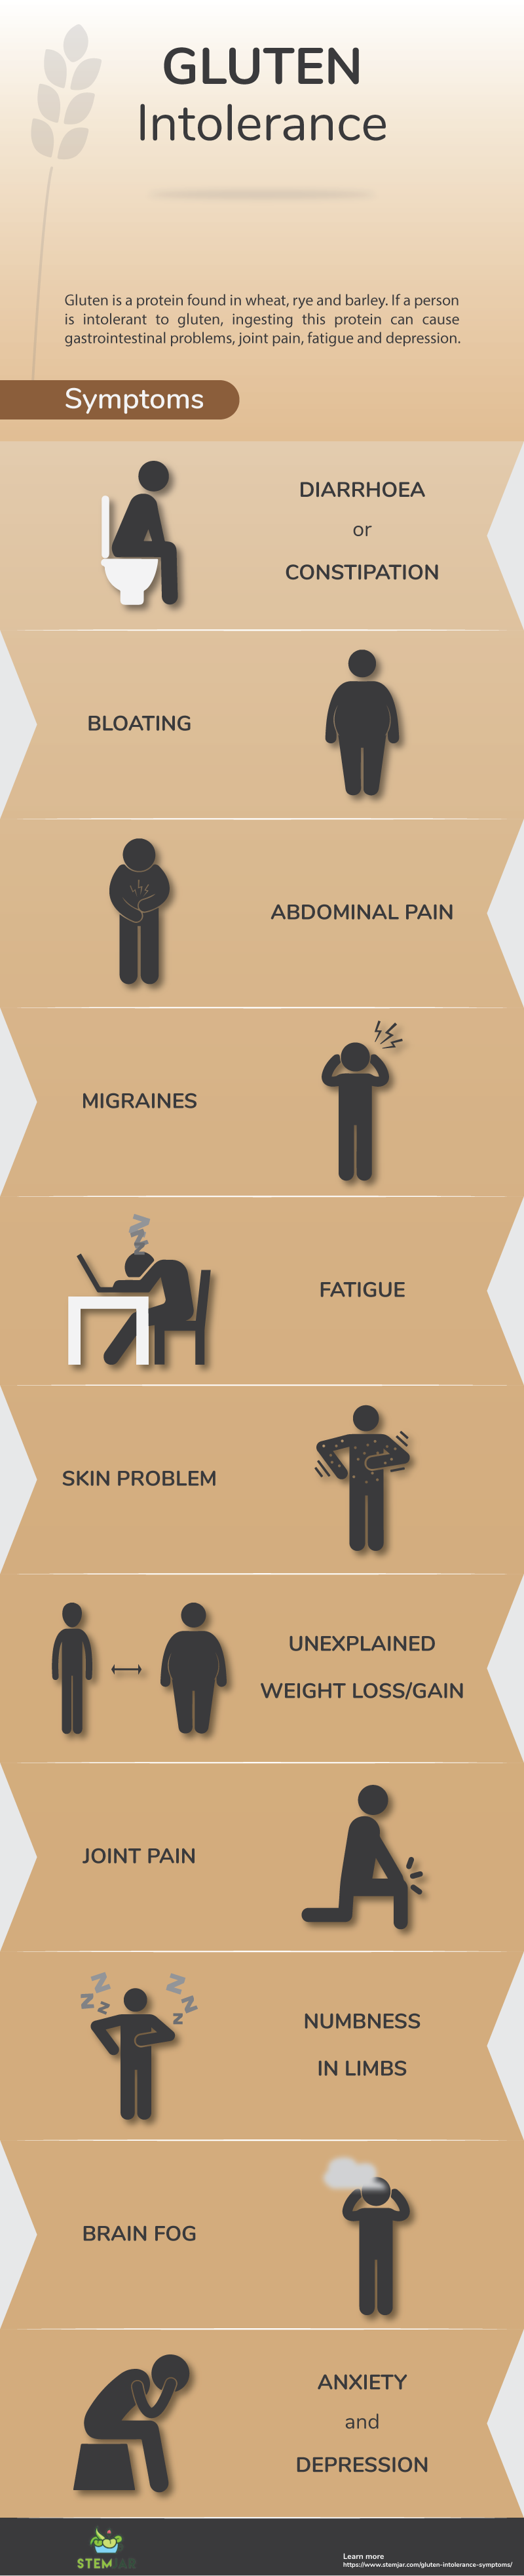 Gluten Intolerance Symptoms info graphic